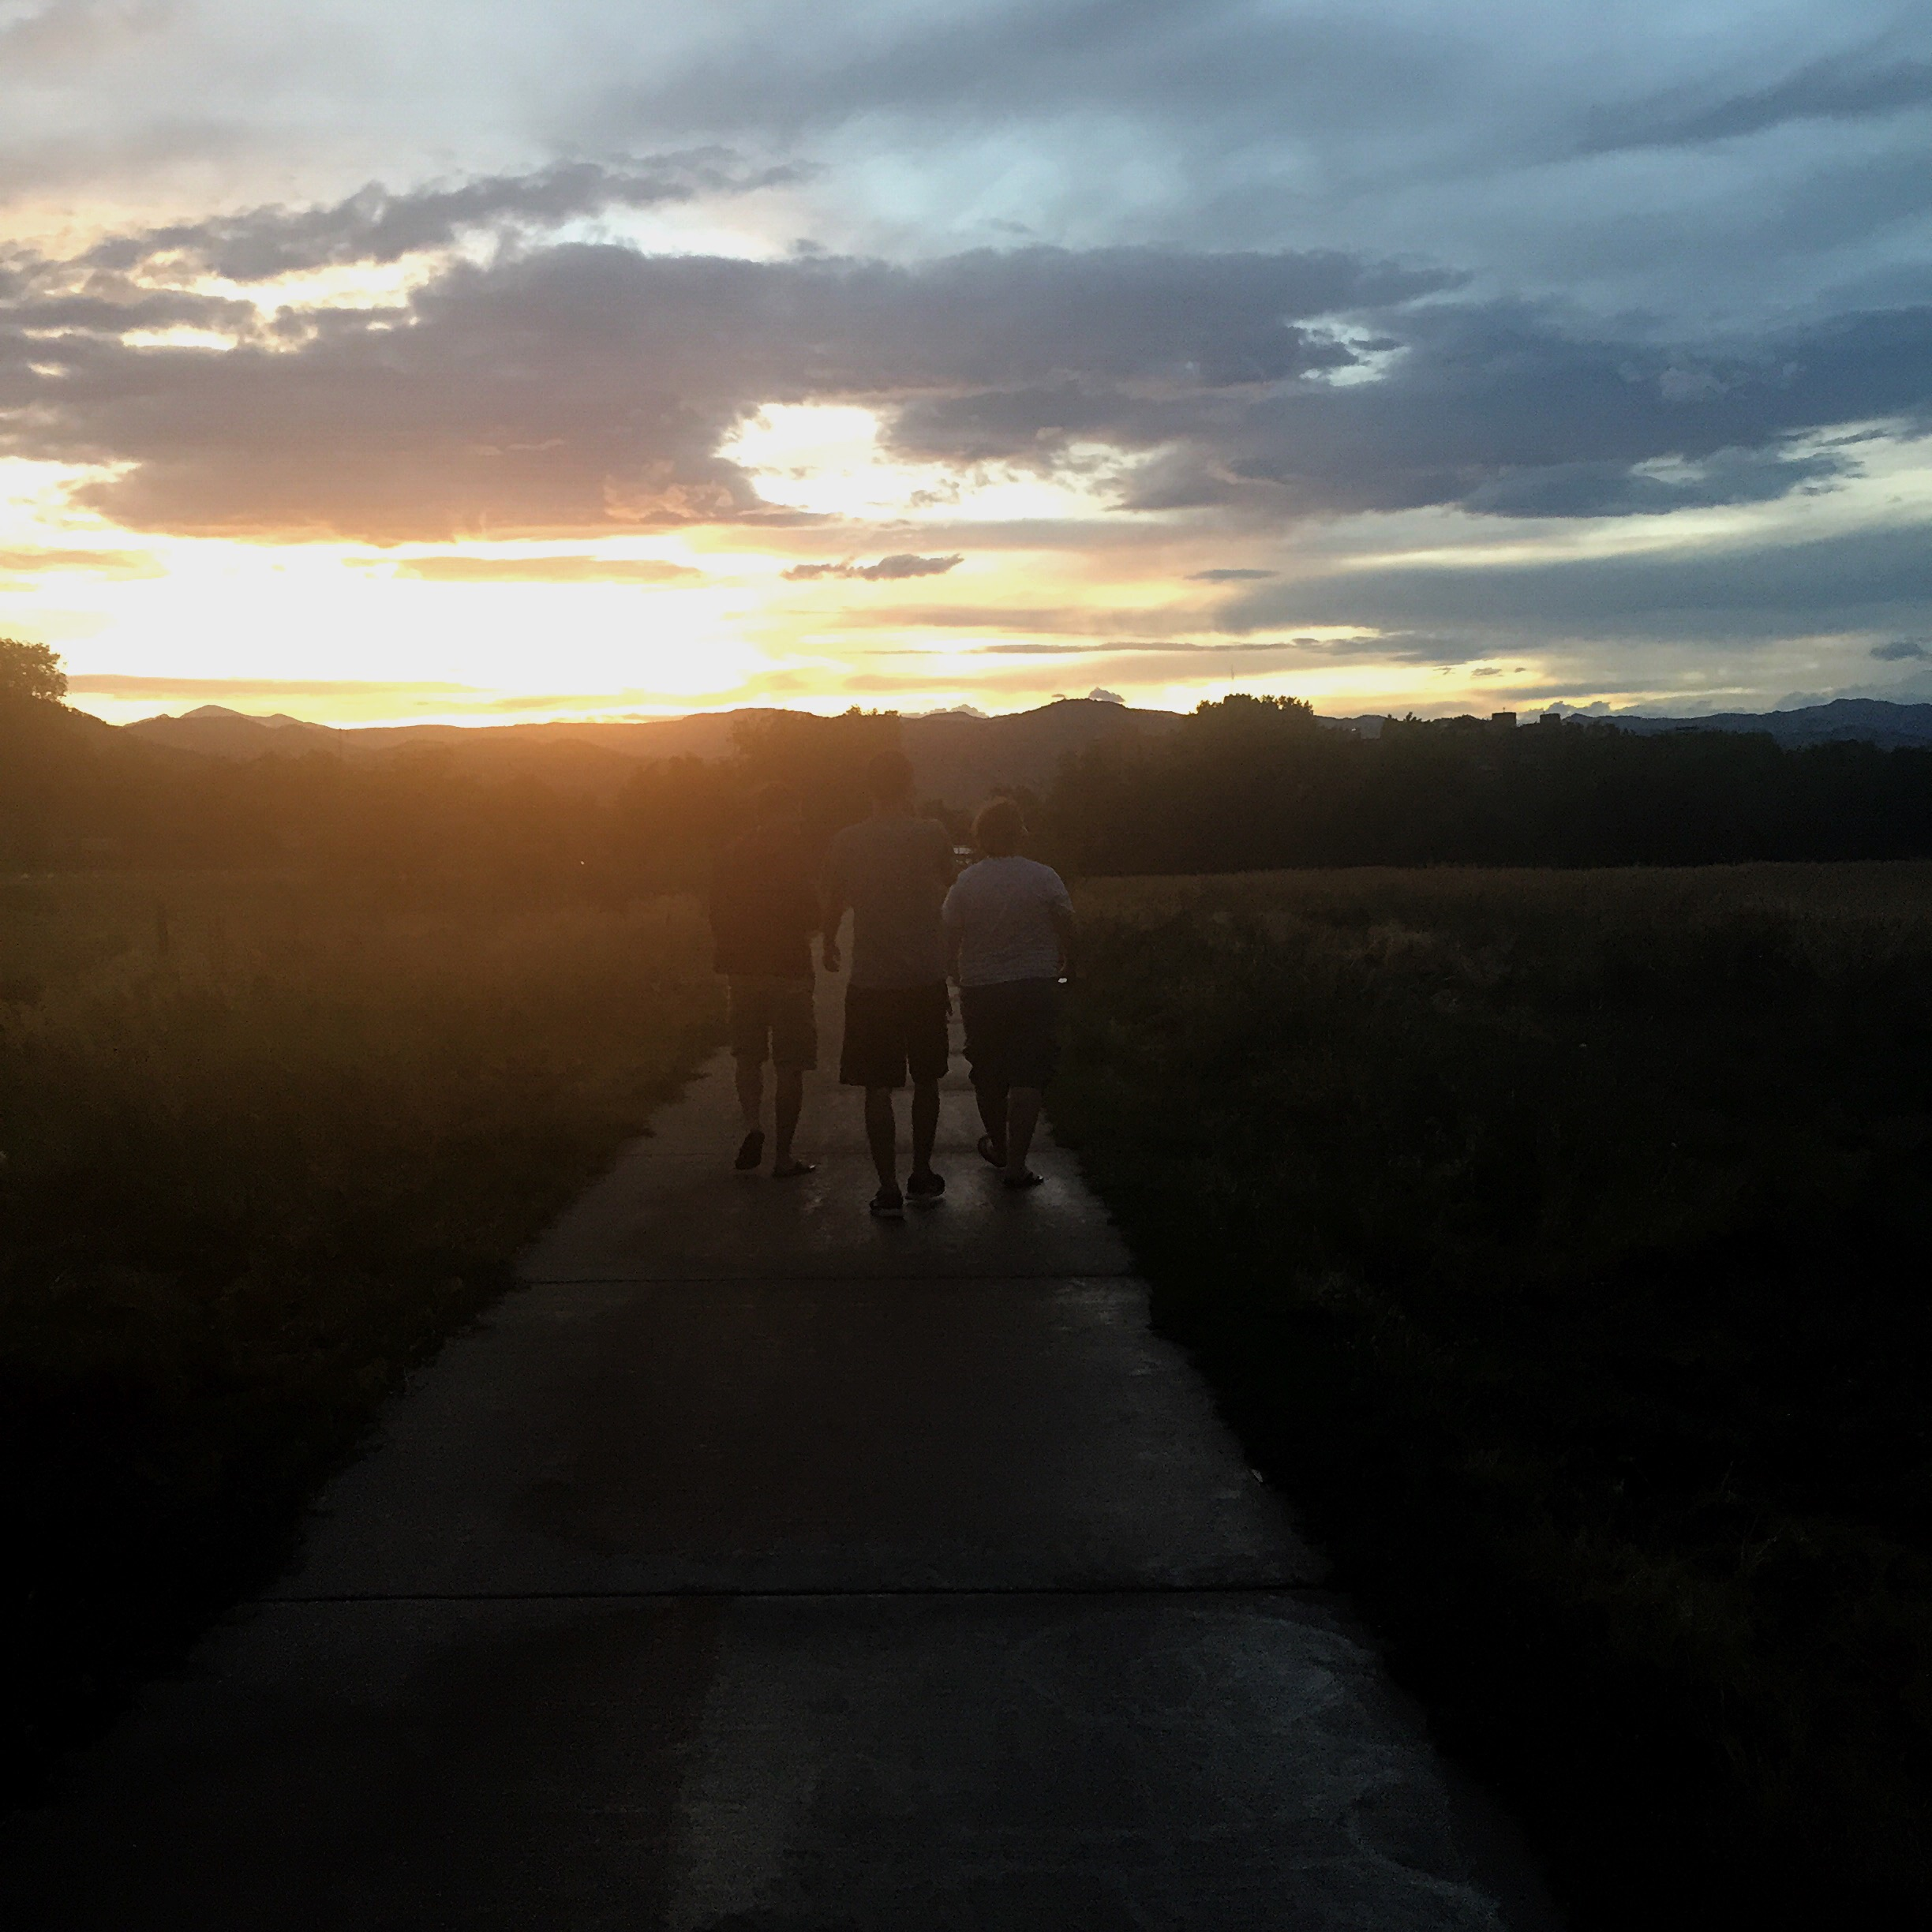 Dramatically walking off into the sunset to catch Pokemon.